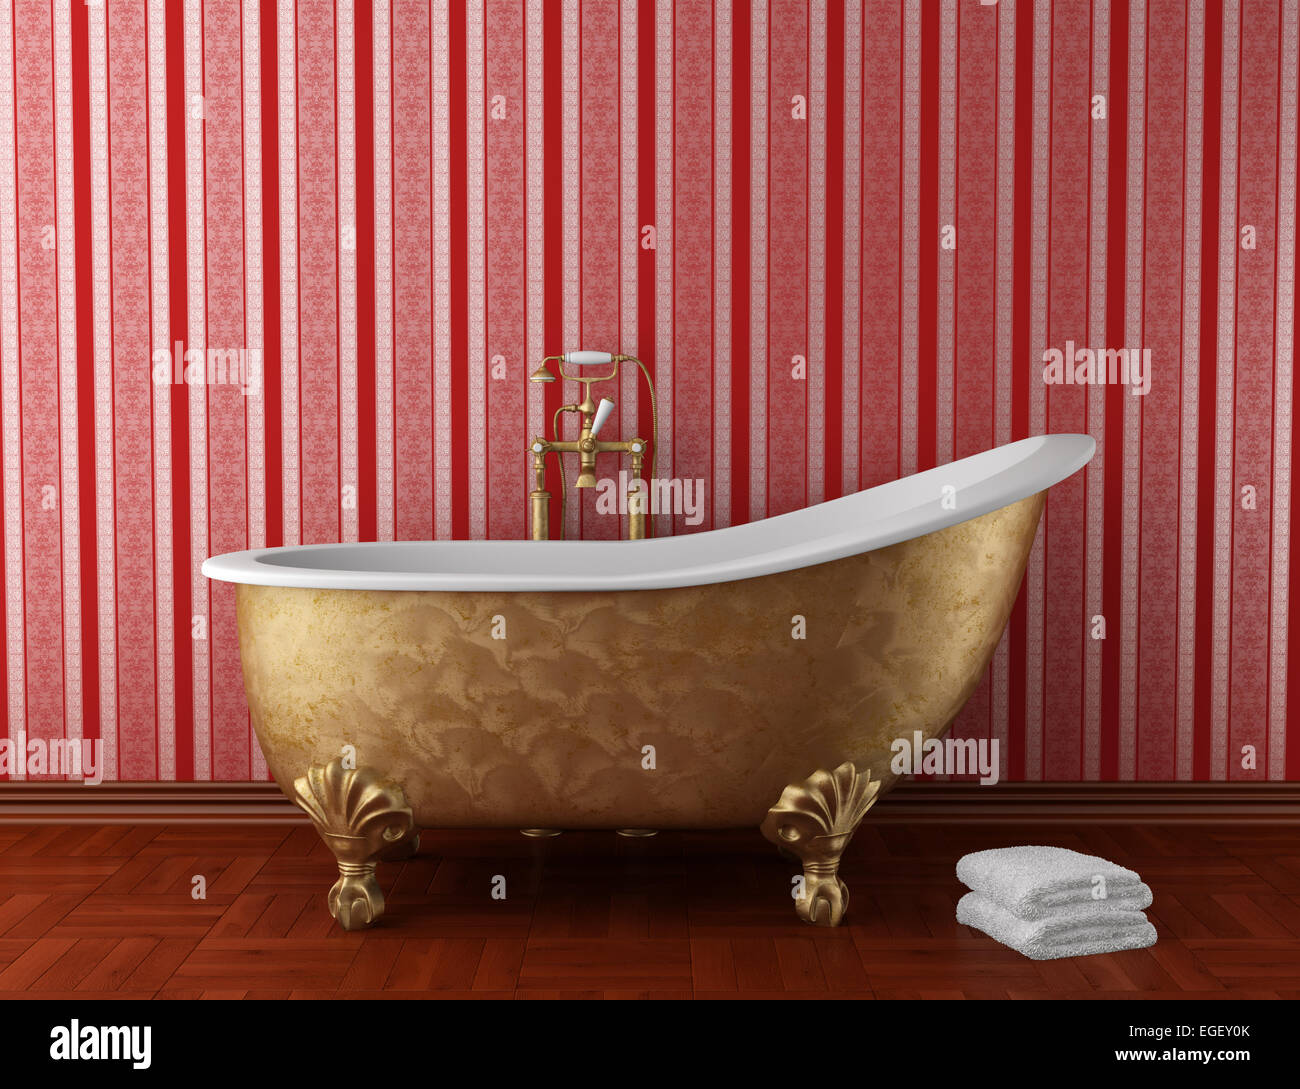 Haunted Places In Silverton Oregon: Old Bathtub Stock Photos & Old Bathtub Stock Images